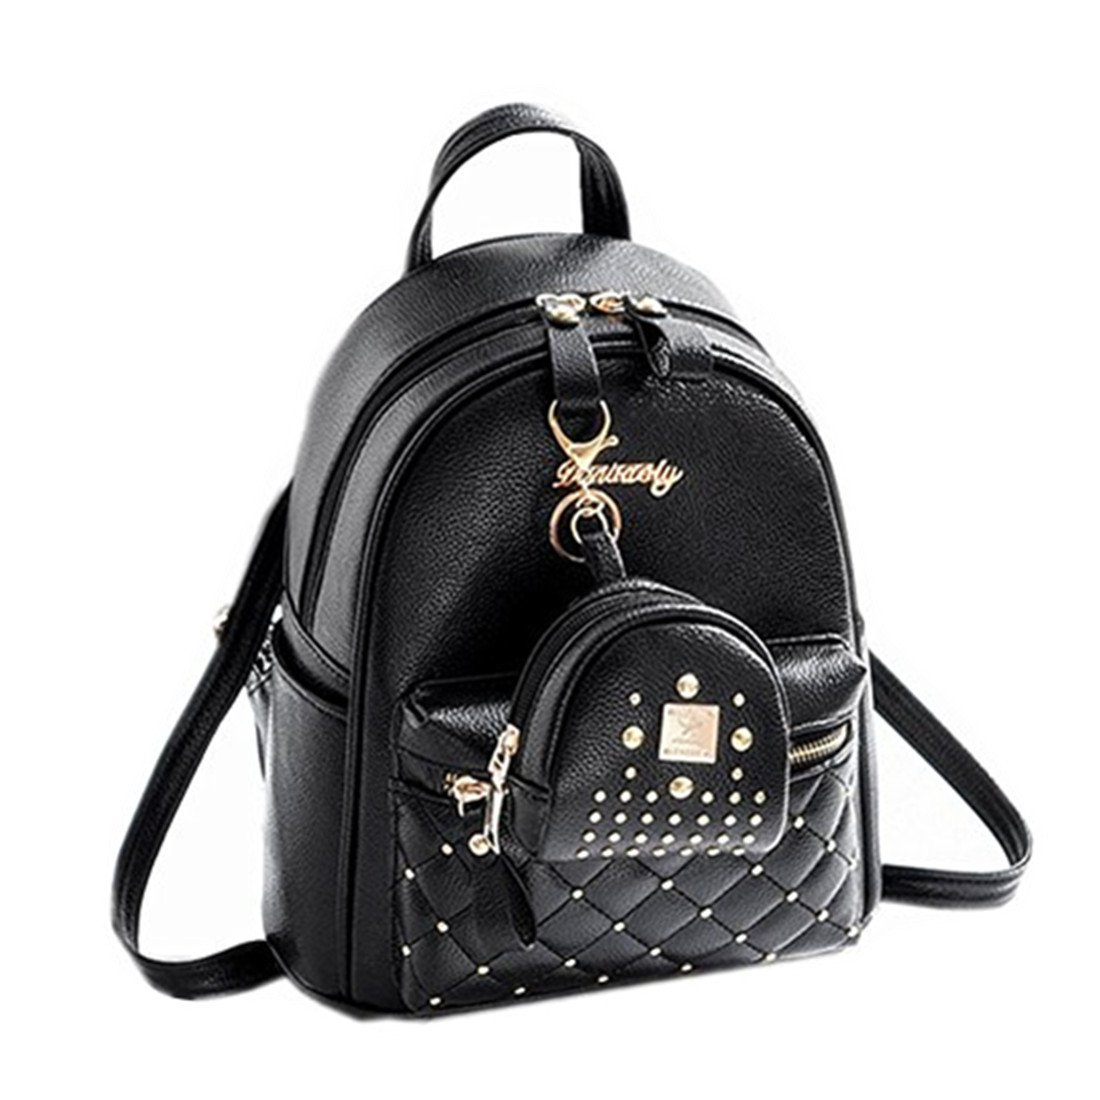 38ad39d7cce Cute Small Backpack Mini Purse Casual Daypacks Leather for Teen and Women  Black